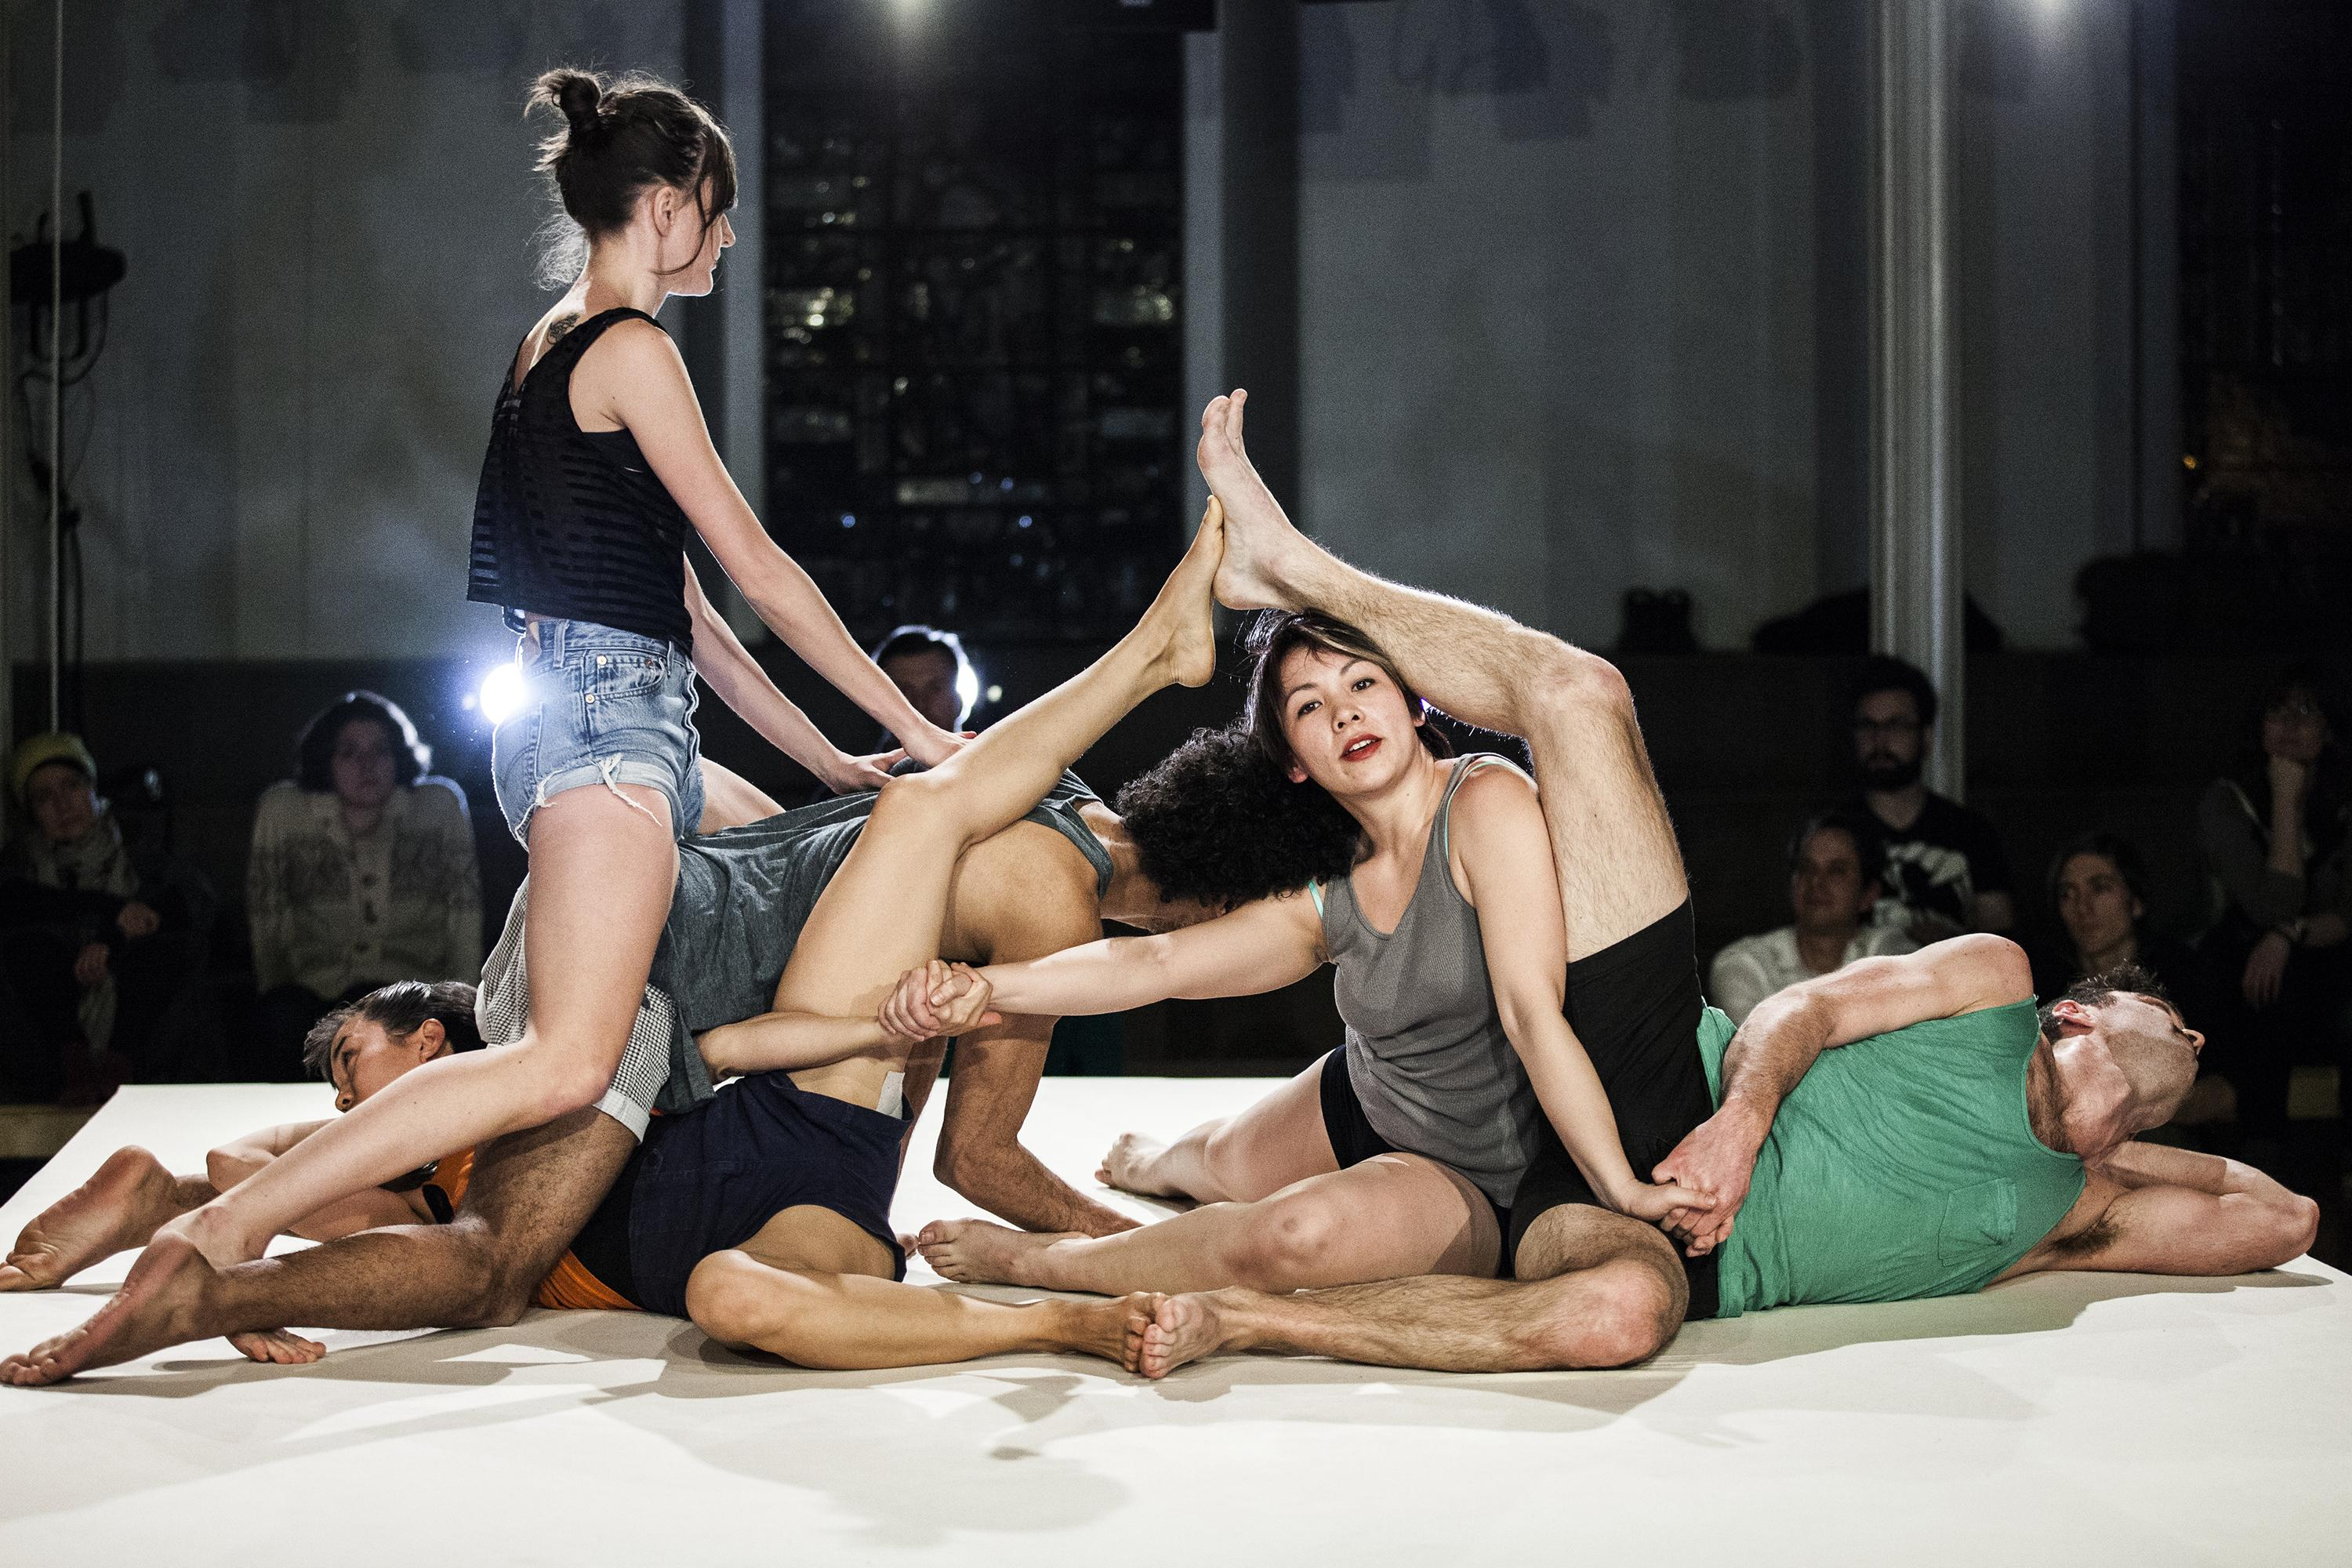 Five coed dancers lie entwined on a small stage